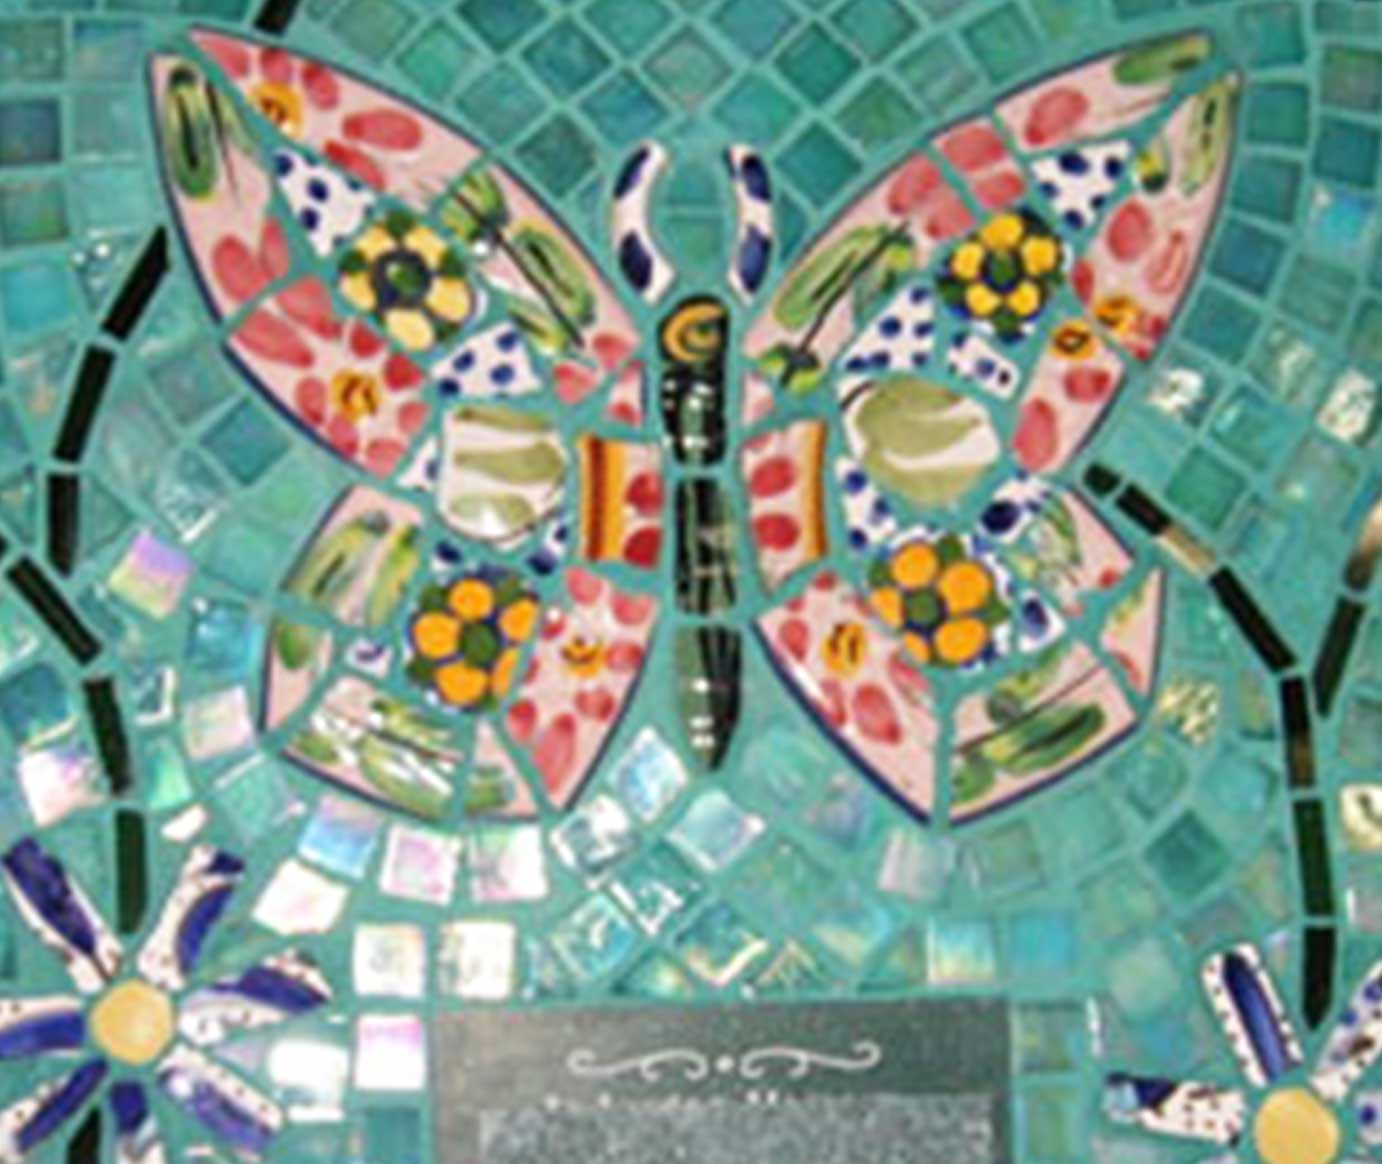 Mosaic Memorial Picture Plaque of a Colorful Butterfly Closeup by Water's End Studio Artist Linda Solby